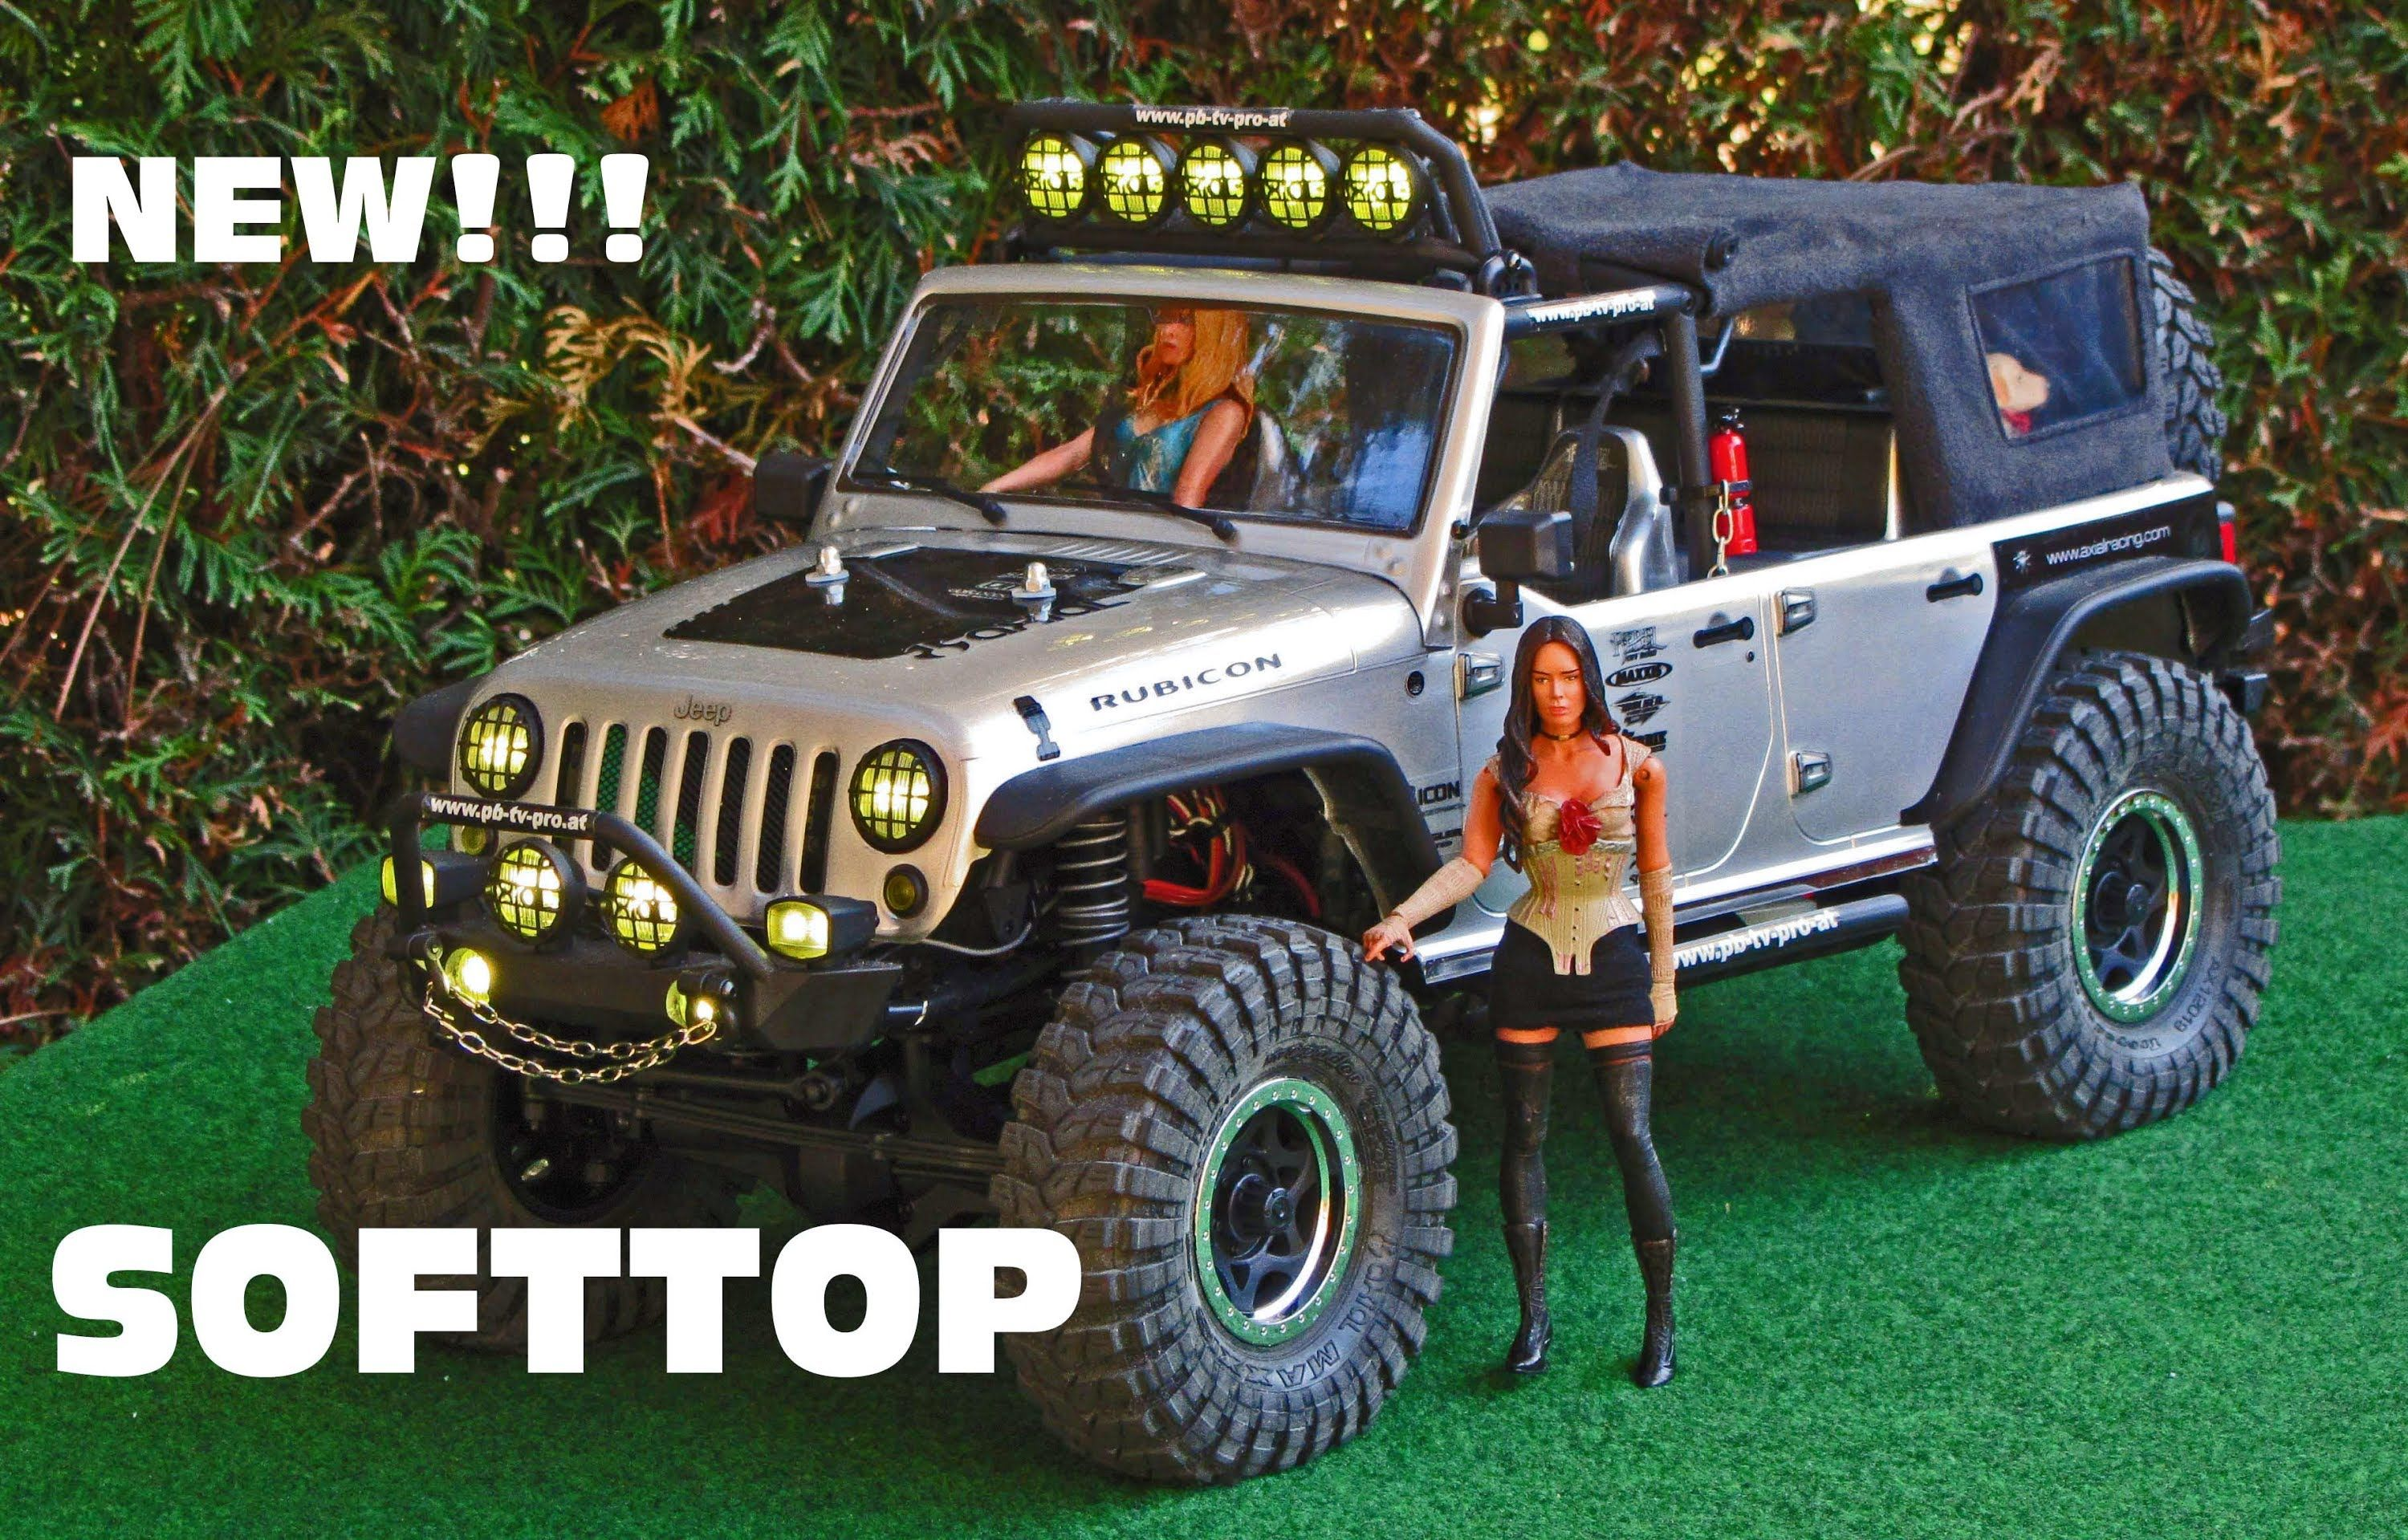 Axial scx10 jeep rubicon softtop how to build a softtop